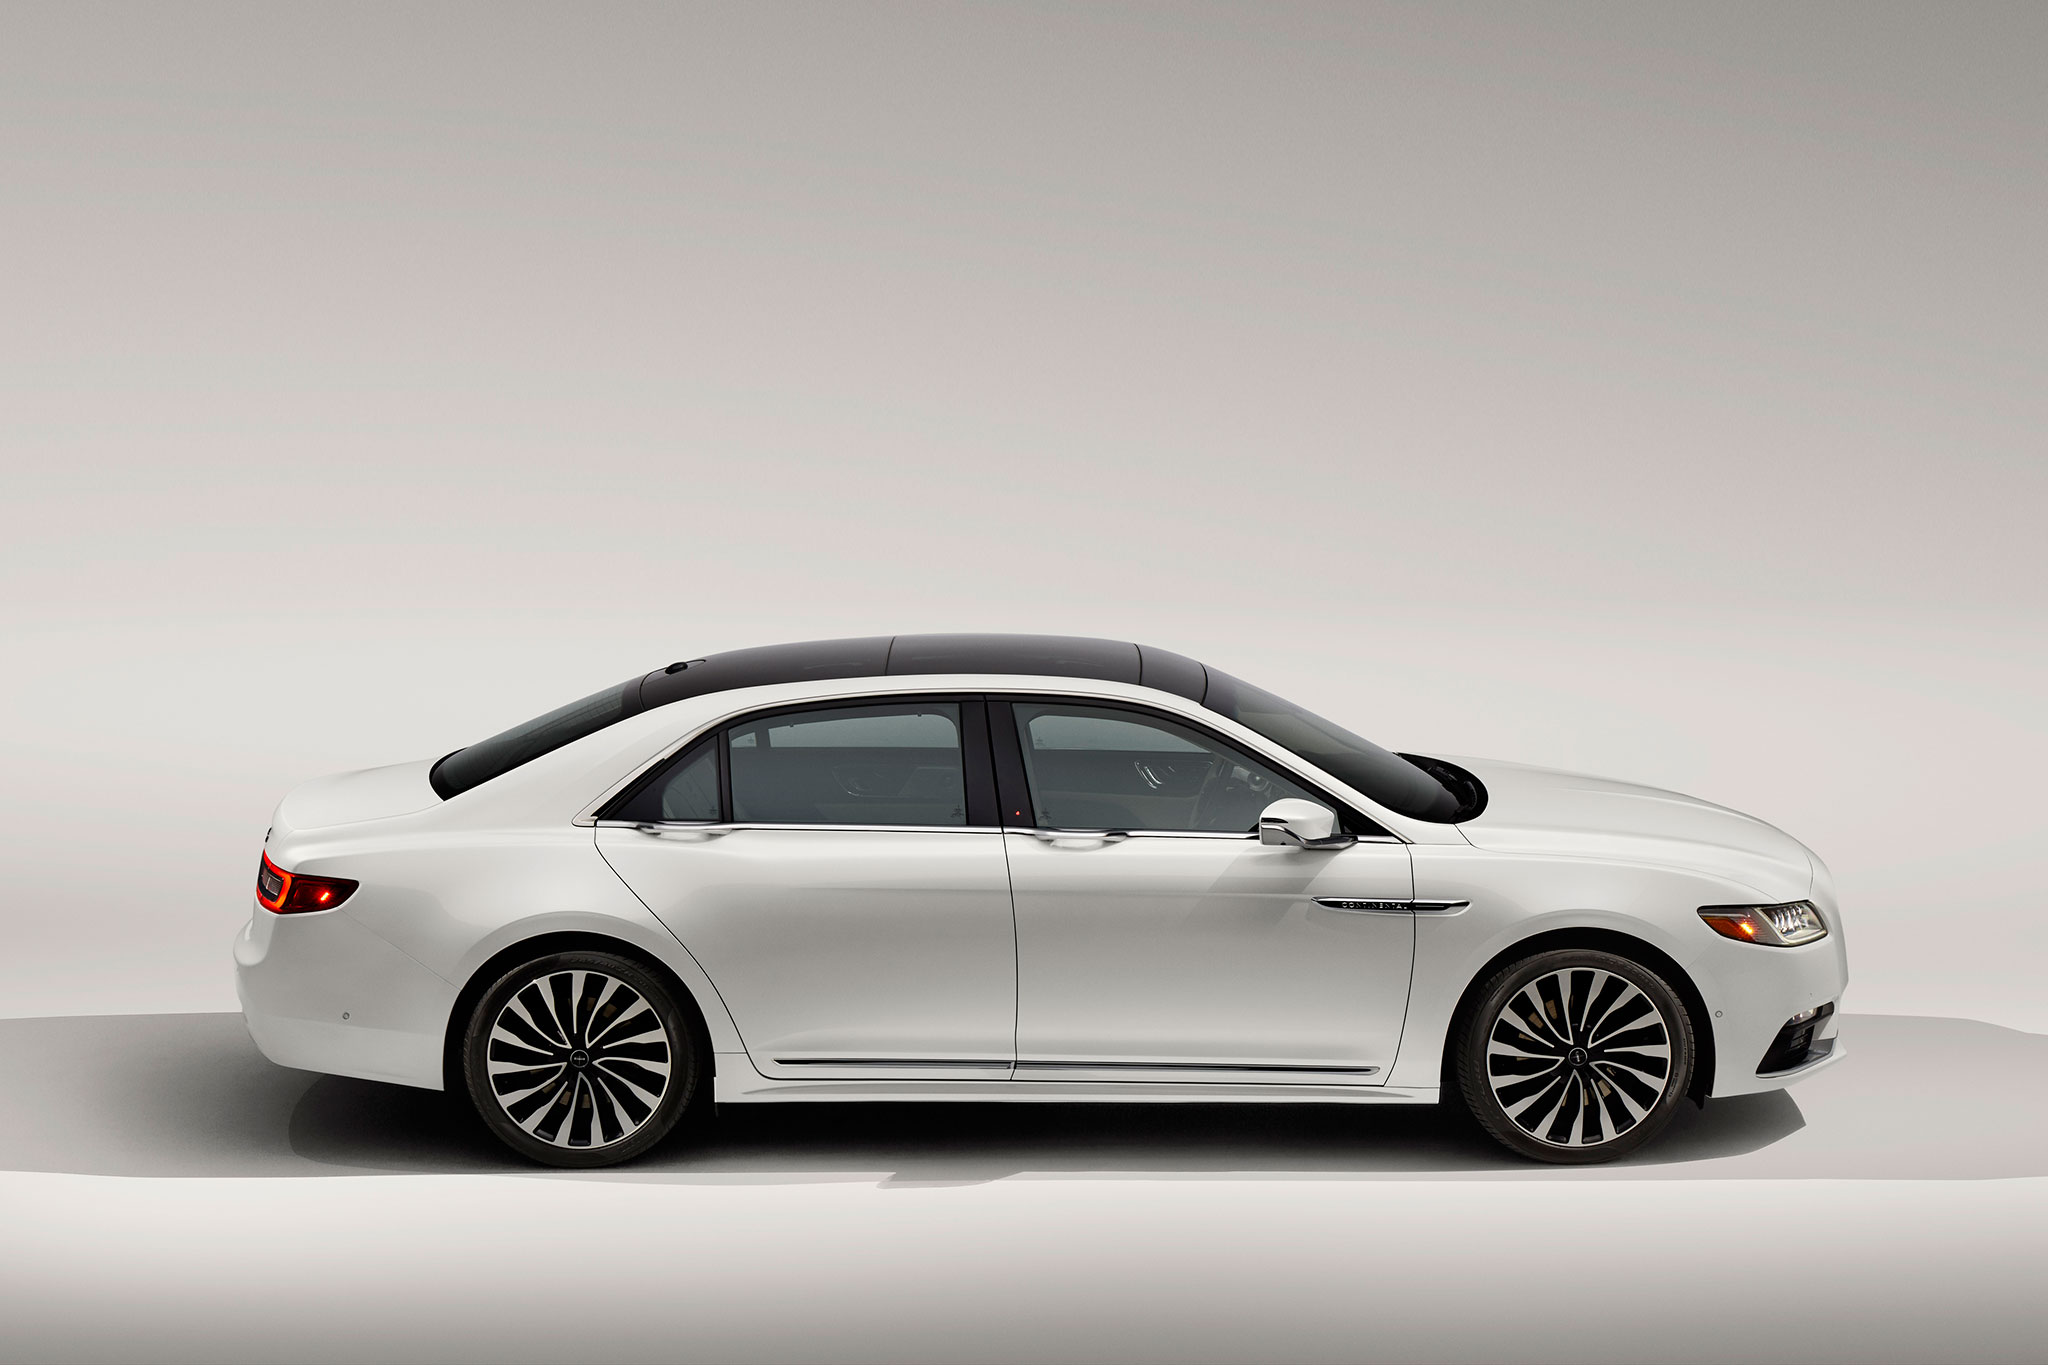 2017-Lincoln-Continental-side-profile